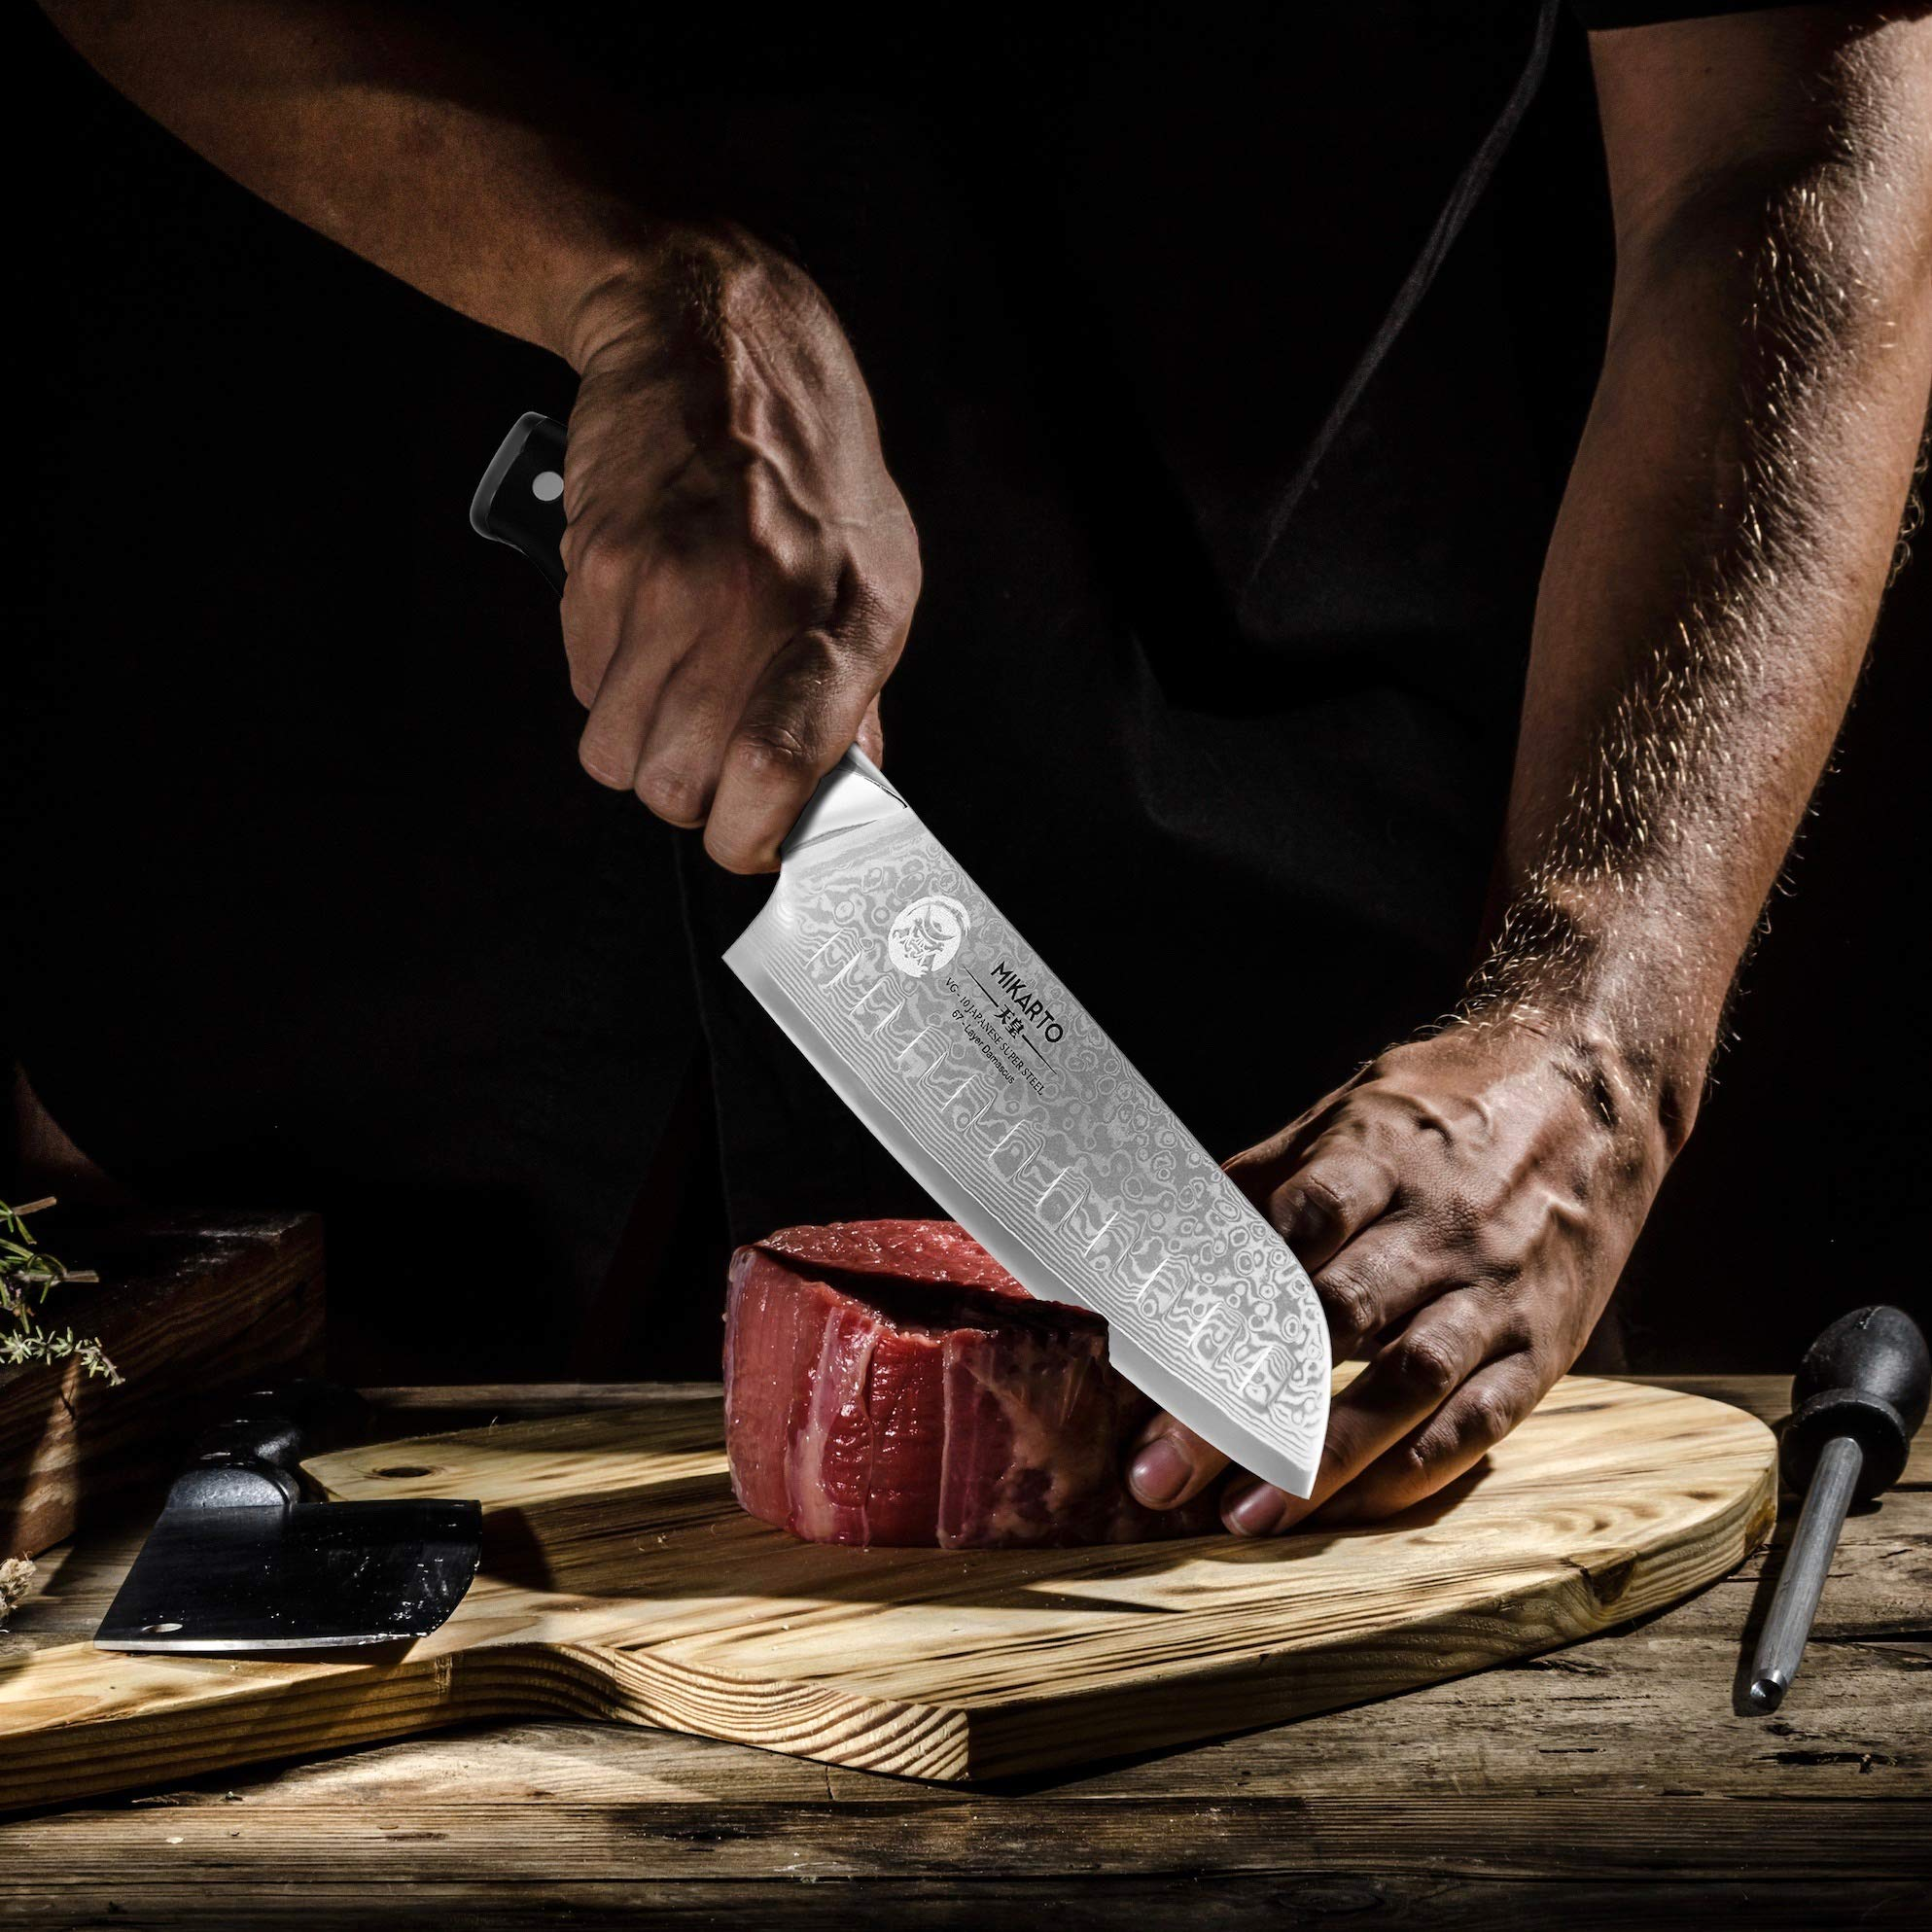 Santoku Japanese Chef Knife, 7 inch, Professional Grade - Damascus Stainless Steel Knife with Tsunami Rose Finish - Ultra Sharp, High Carbon Kitchen Knives - Quality, All Purpose, Precision Cutting by MIKARTO Knife Ware (Image #10)